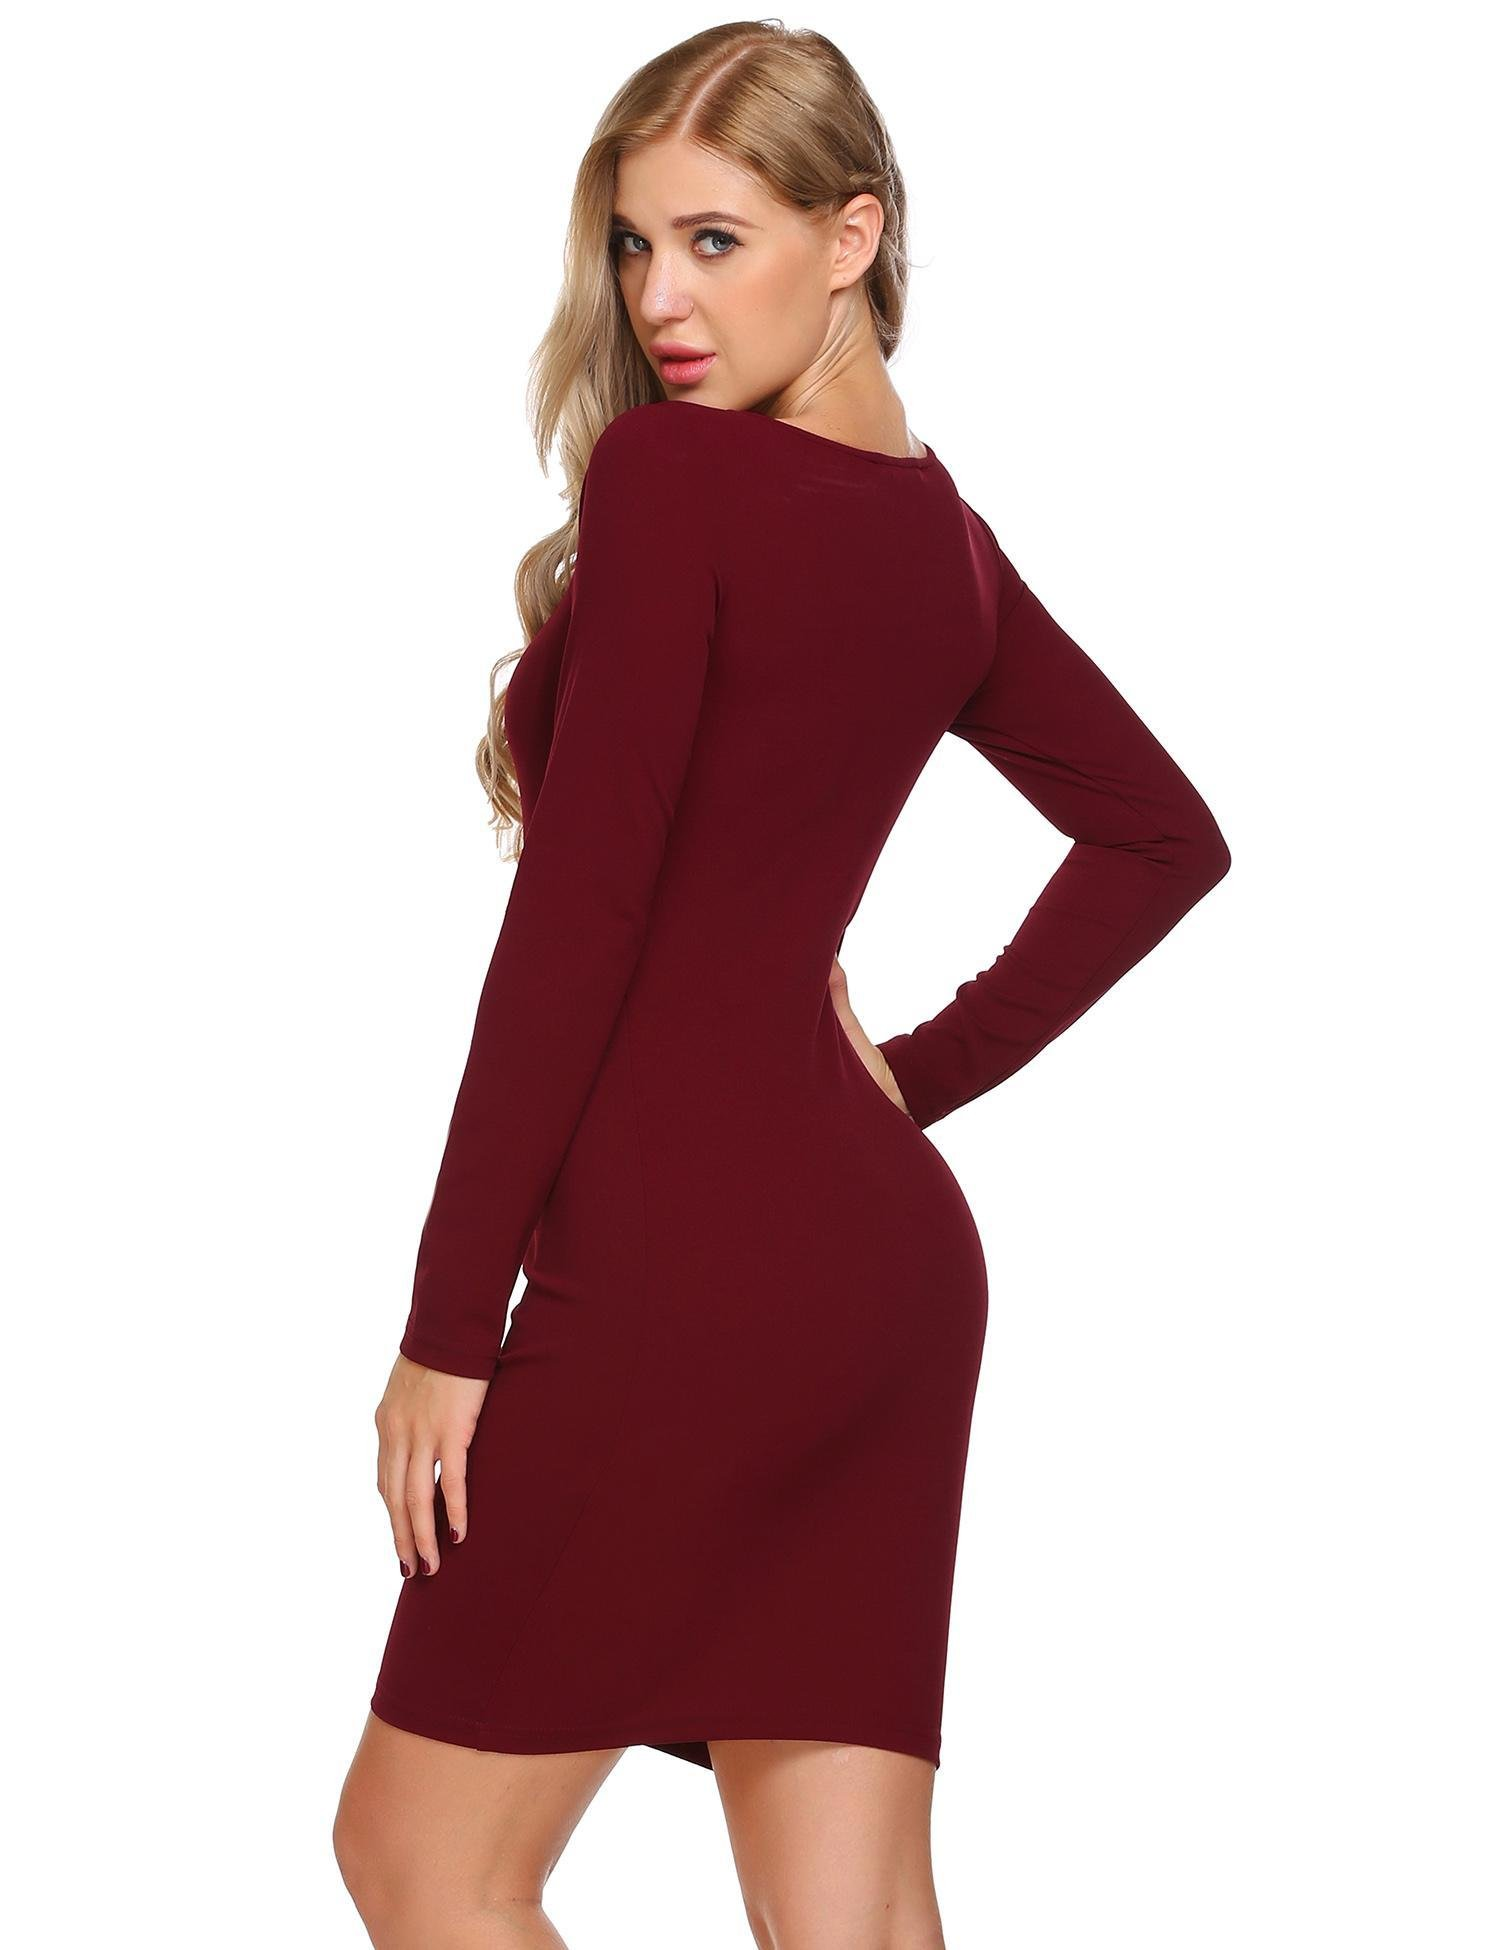 DREZZED Women U Neck Long Sleeve Solid Slim Fit Bodycon Mini Dress Wine Red